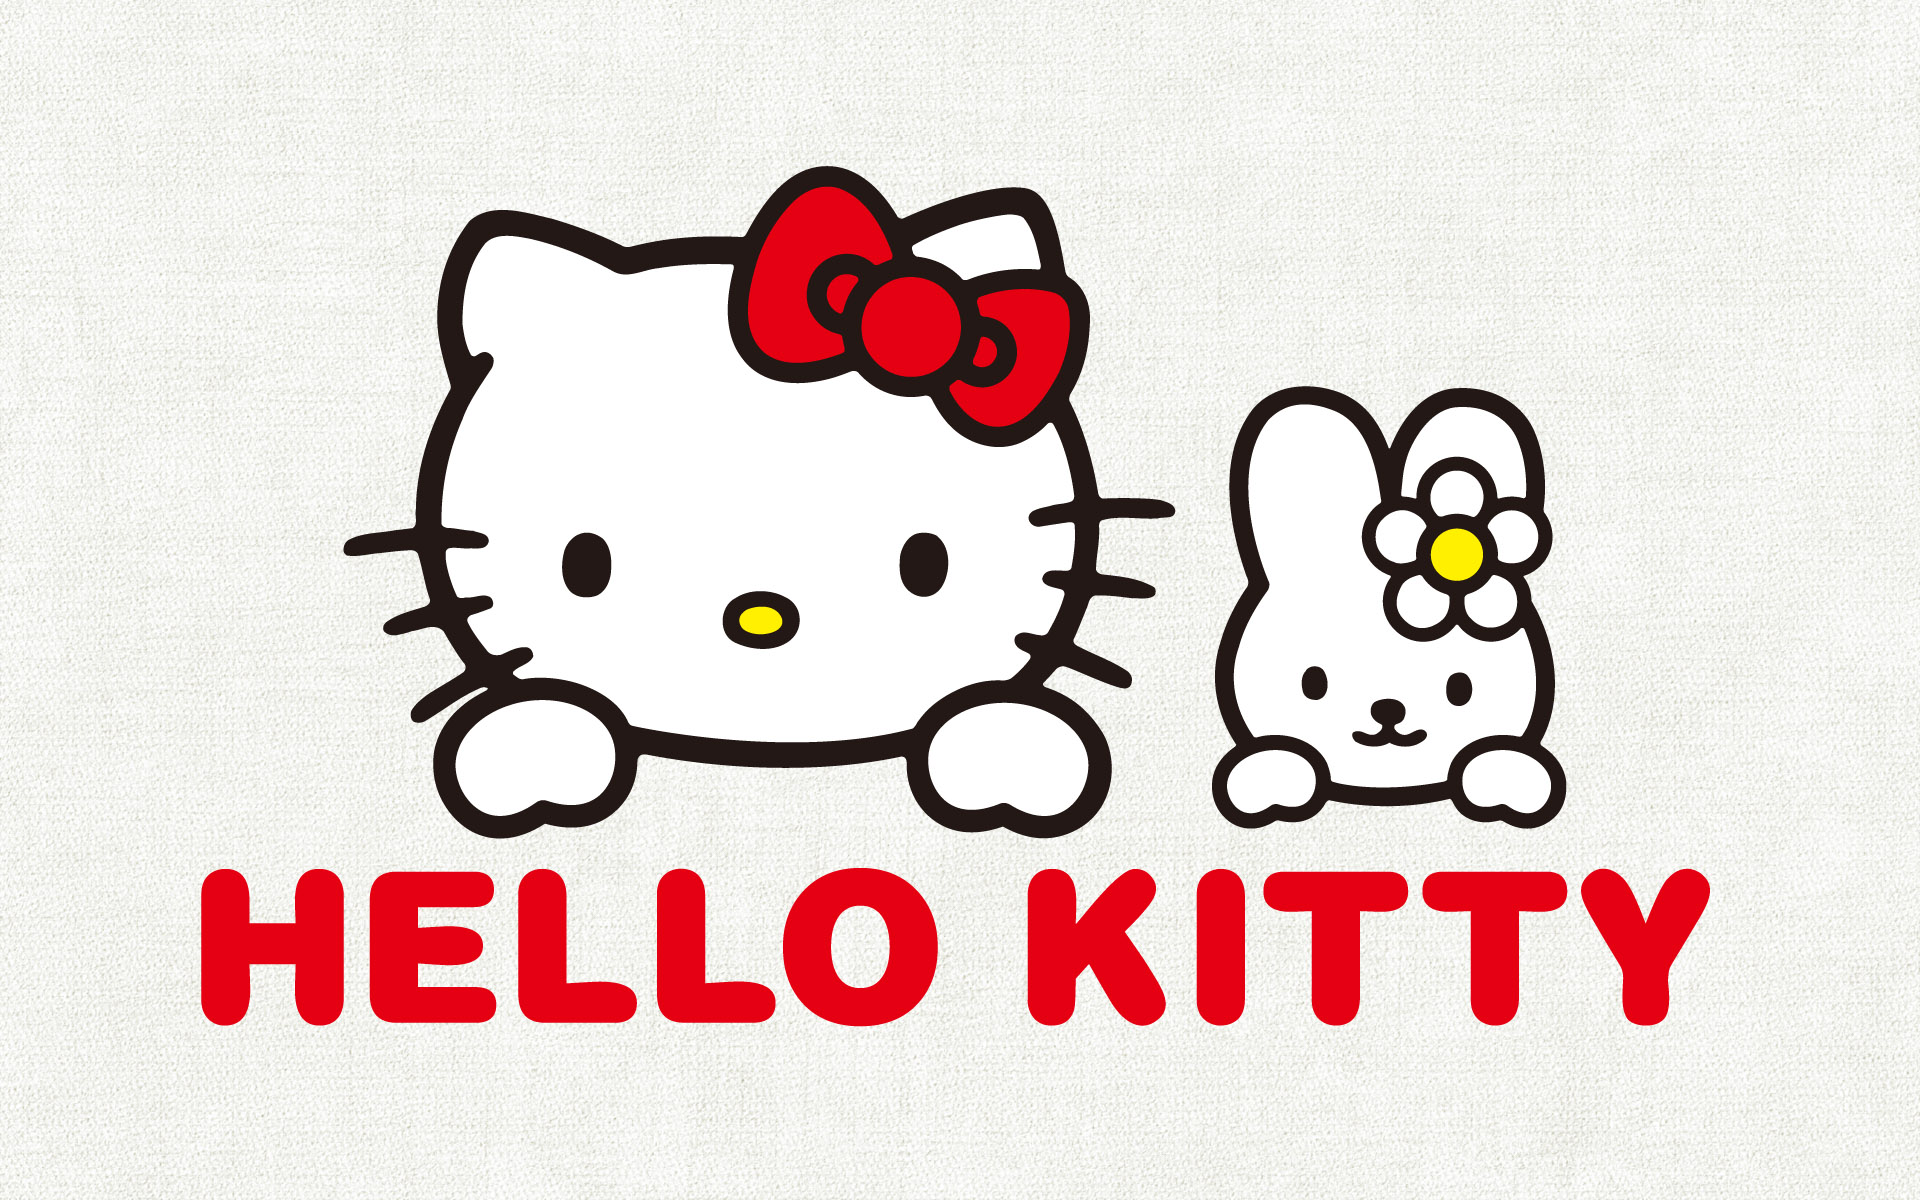 kitty hello screensaver background wallpaper images 1920x1200 1920x1200